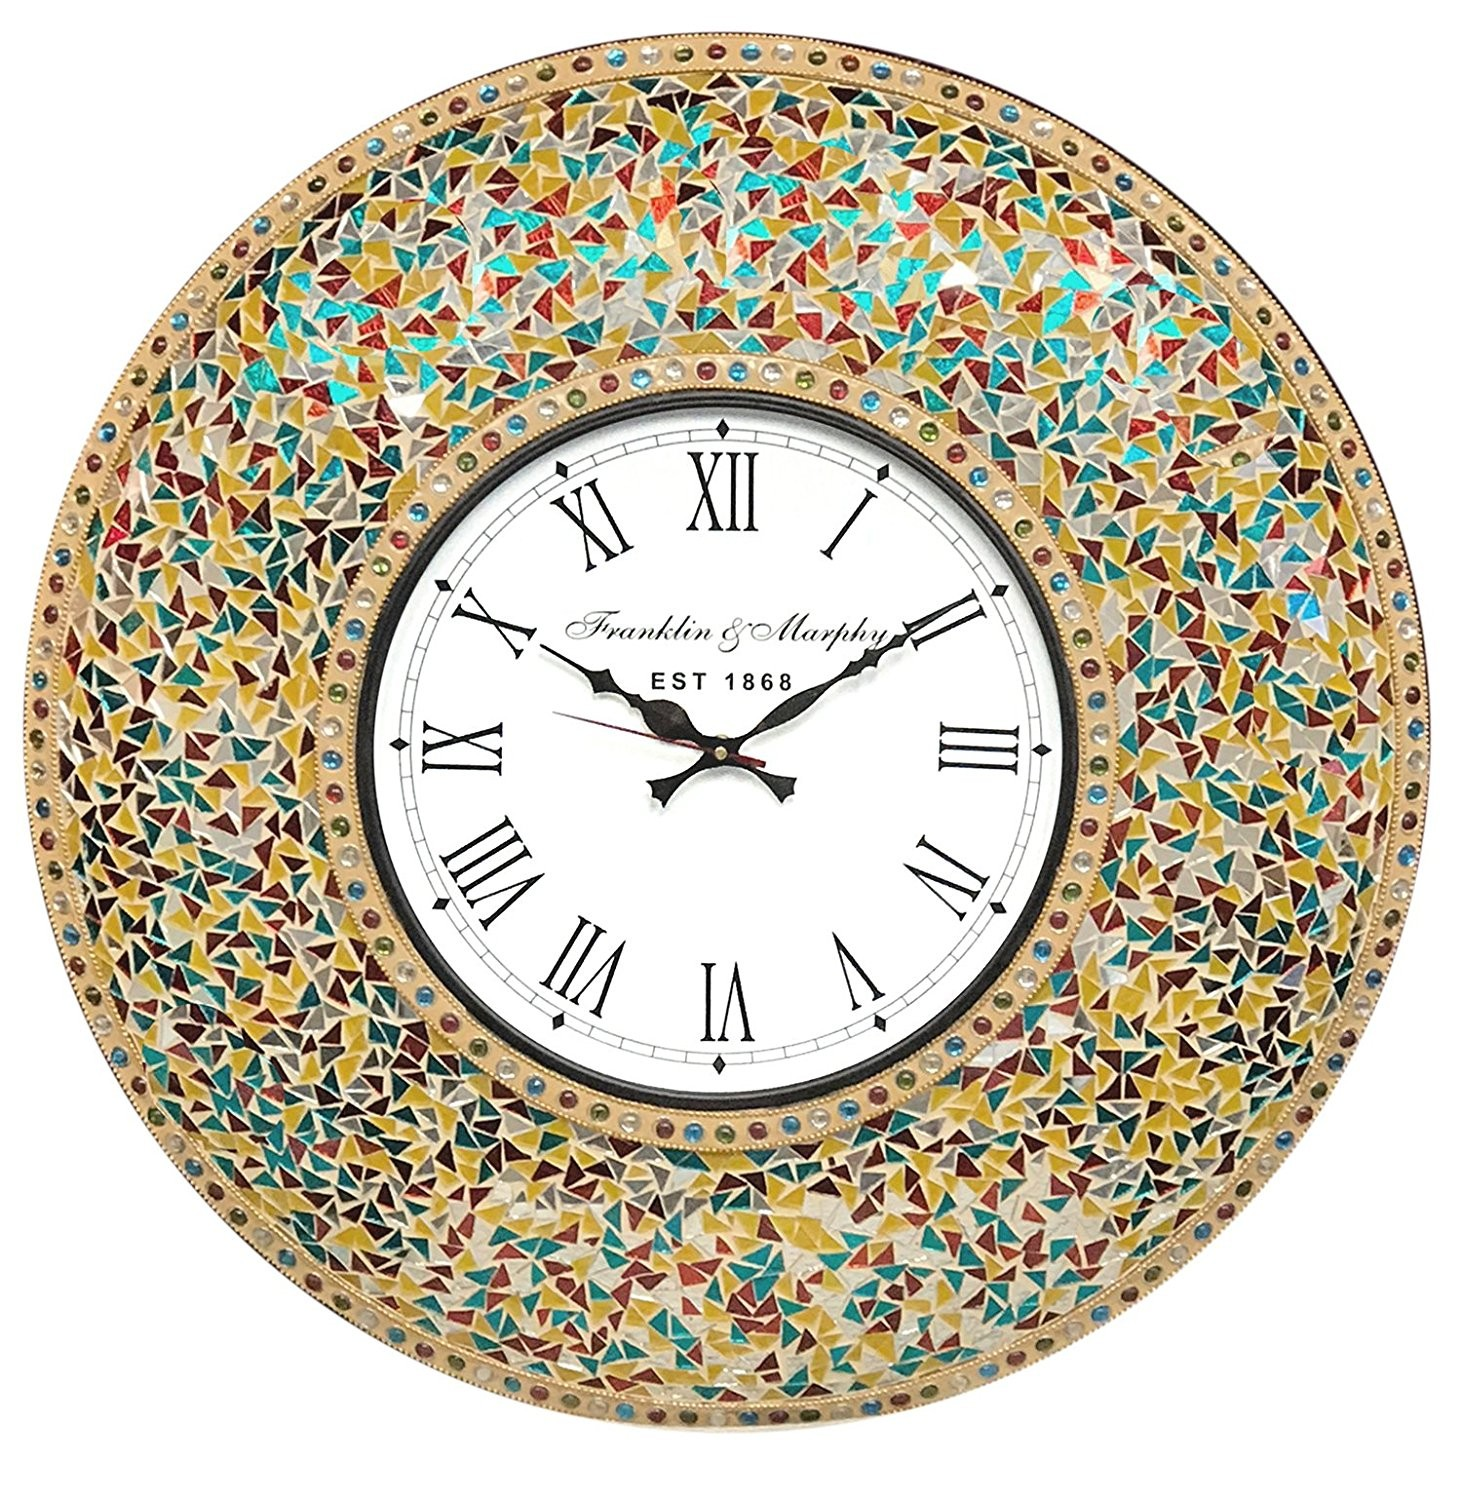 Decorshore 23 decorative wall clock with glass mosaic oversized decorshore 23 decorative wall clock with glass mosaic oversized retro rainbow amipublicfo Images